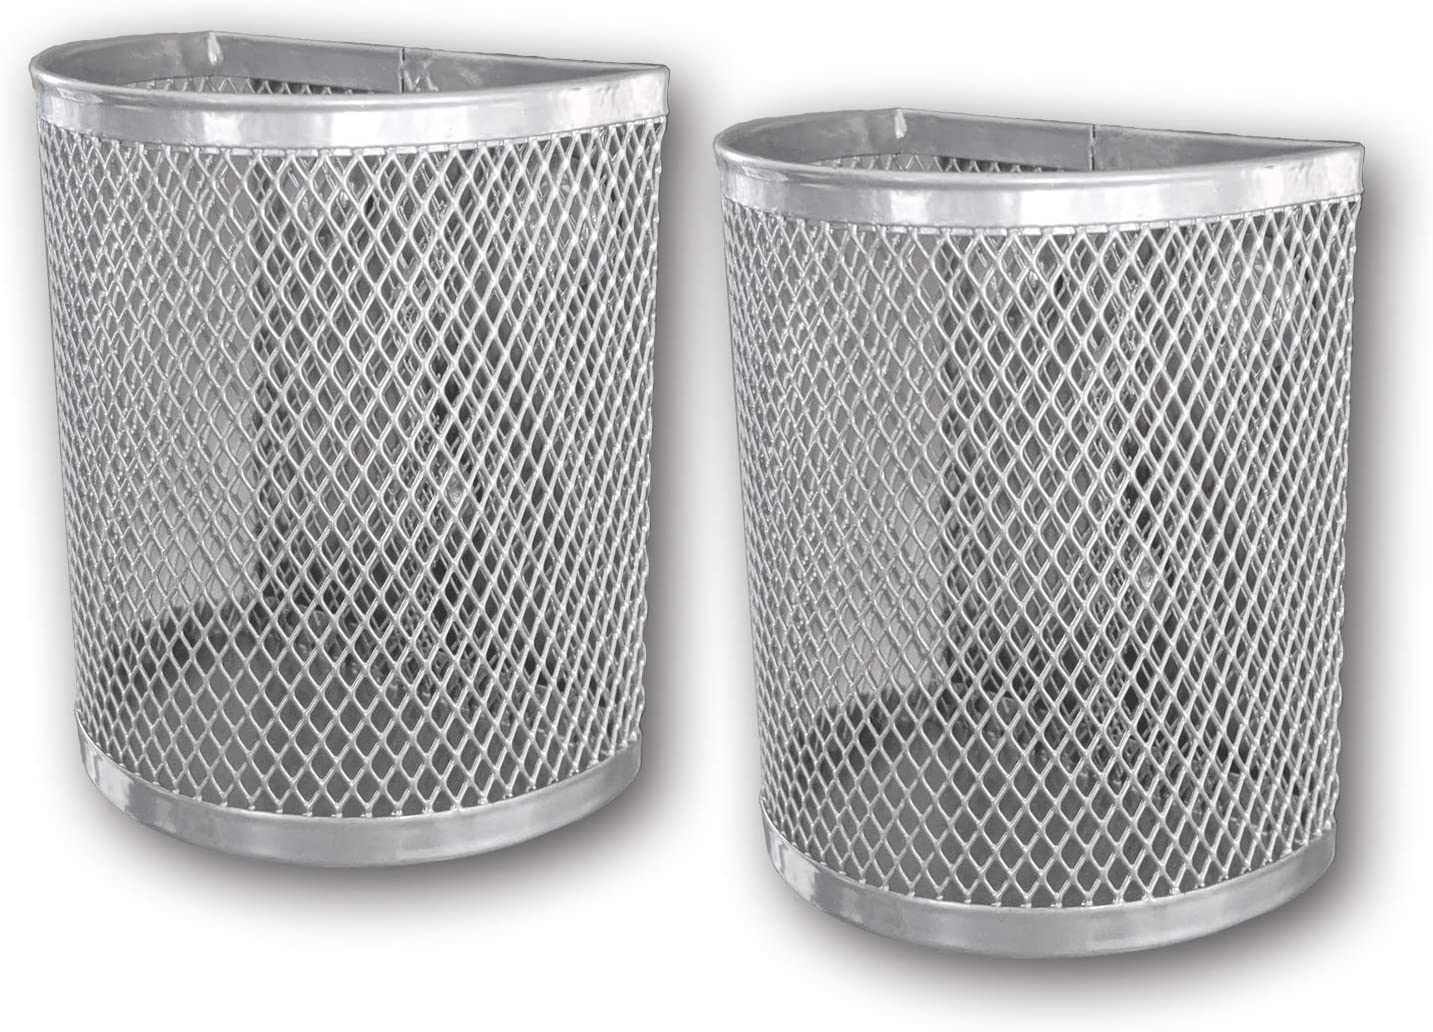 Magnetic Pen/Pencil Mesh Metal Basket/Holder/Container/Storage/Organizer for Kitchen/Refrigerator/Fridge/Whiteboard/Dry Erase/File Cabinet/Locker (Silver)(Set of 2)